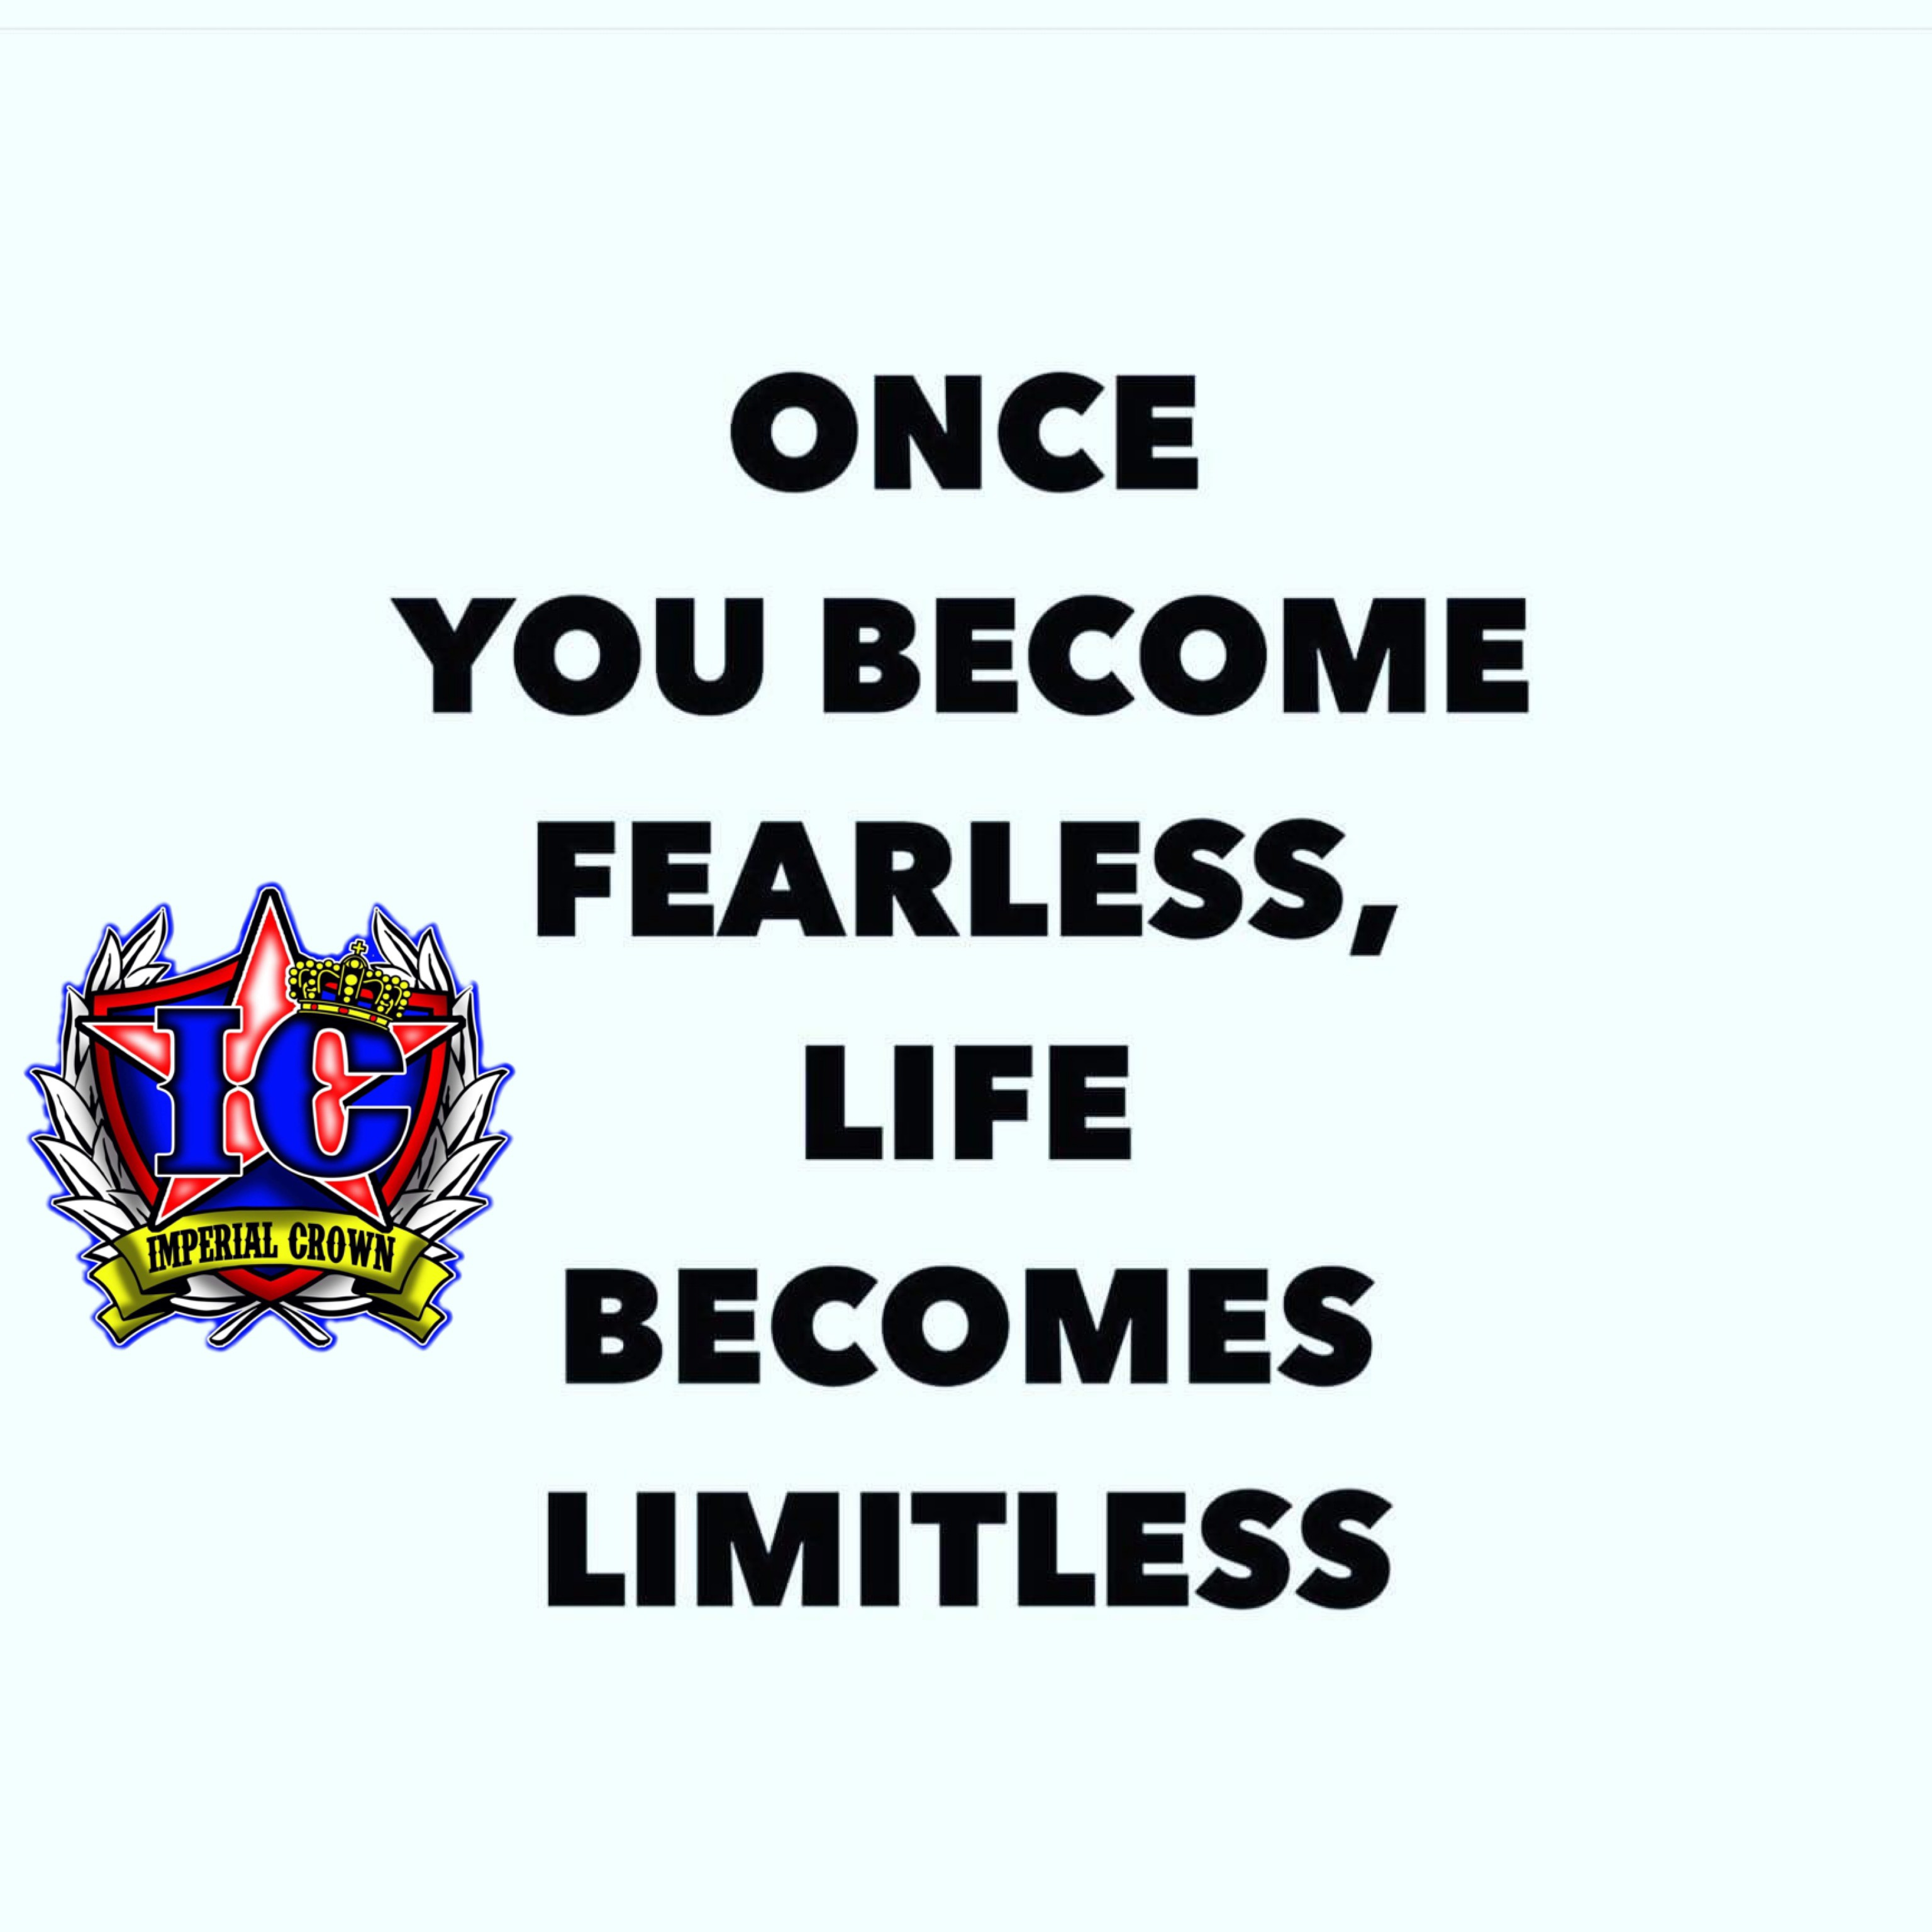 Once you become fearless I life becomes limitless